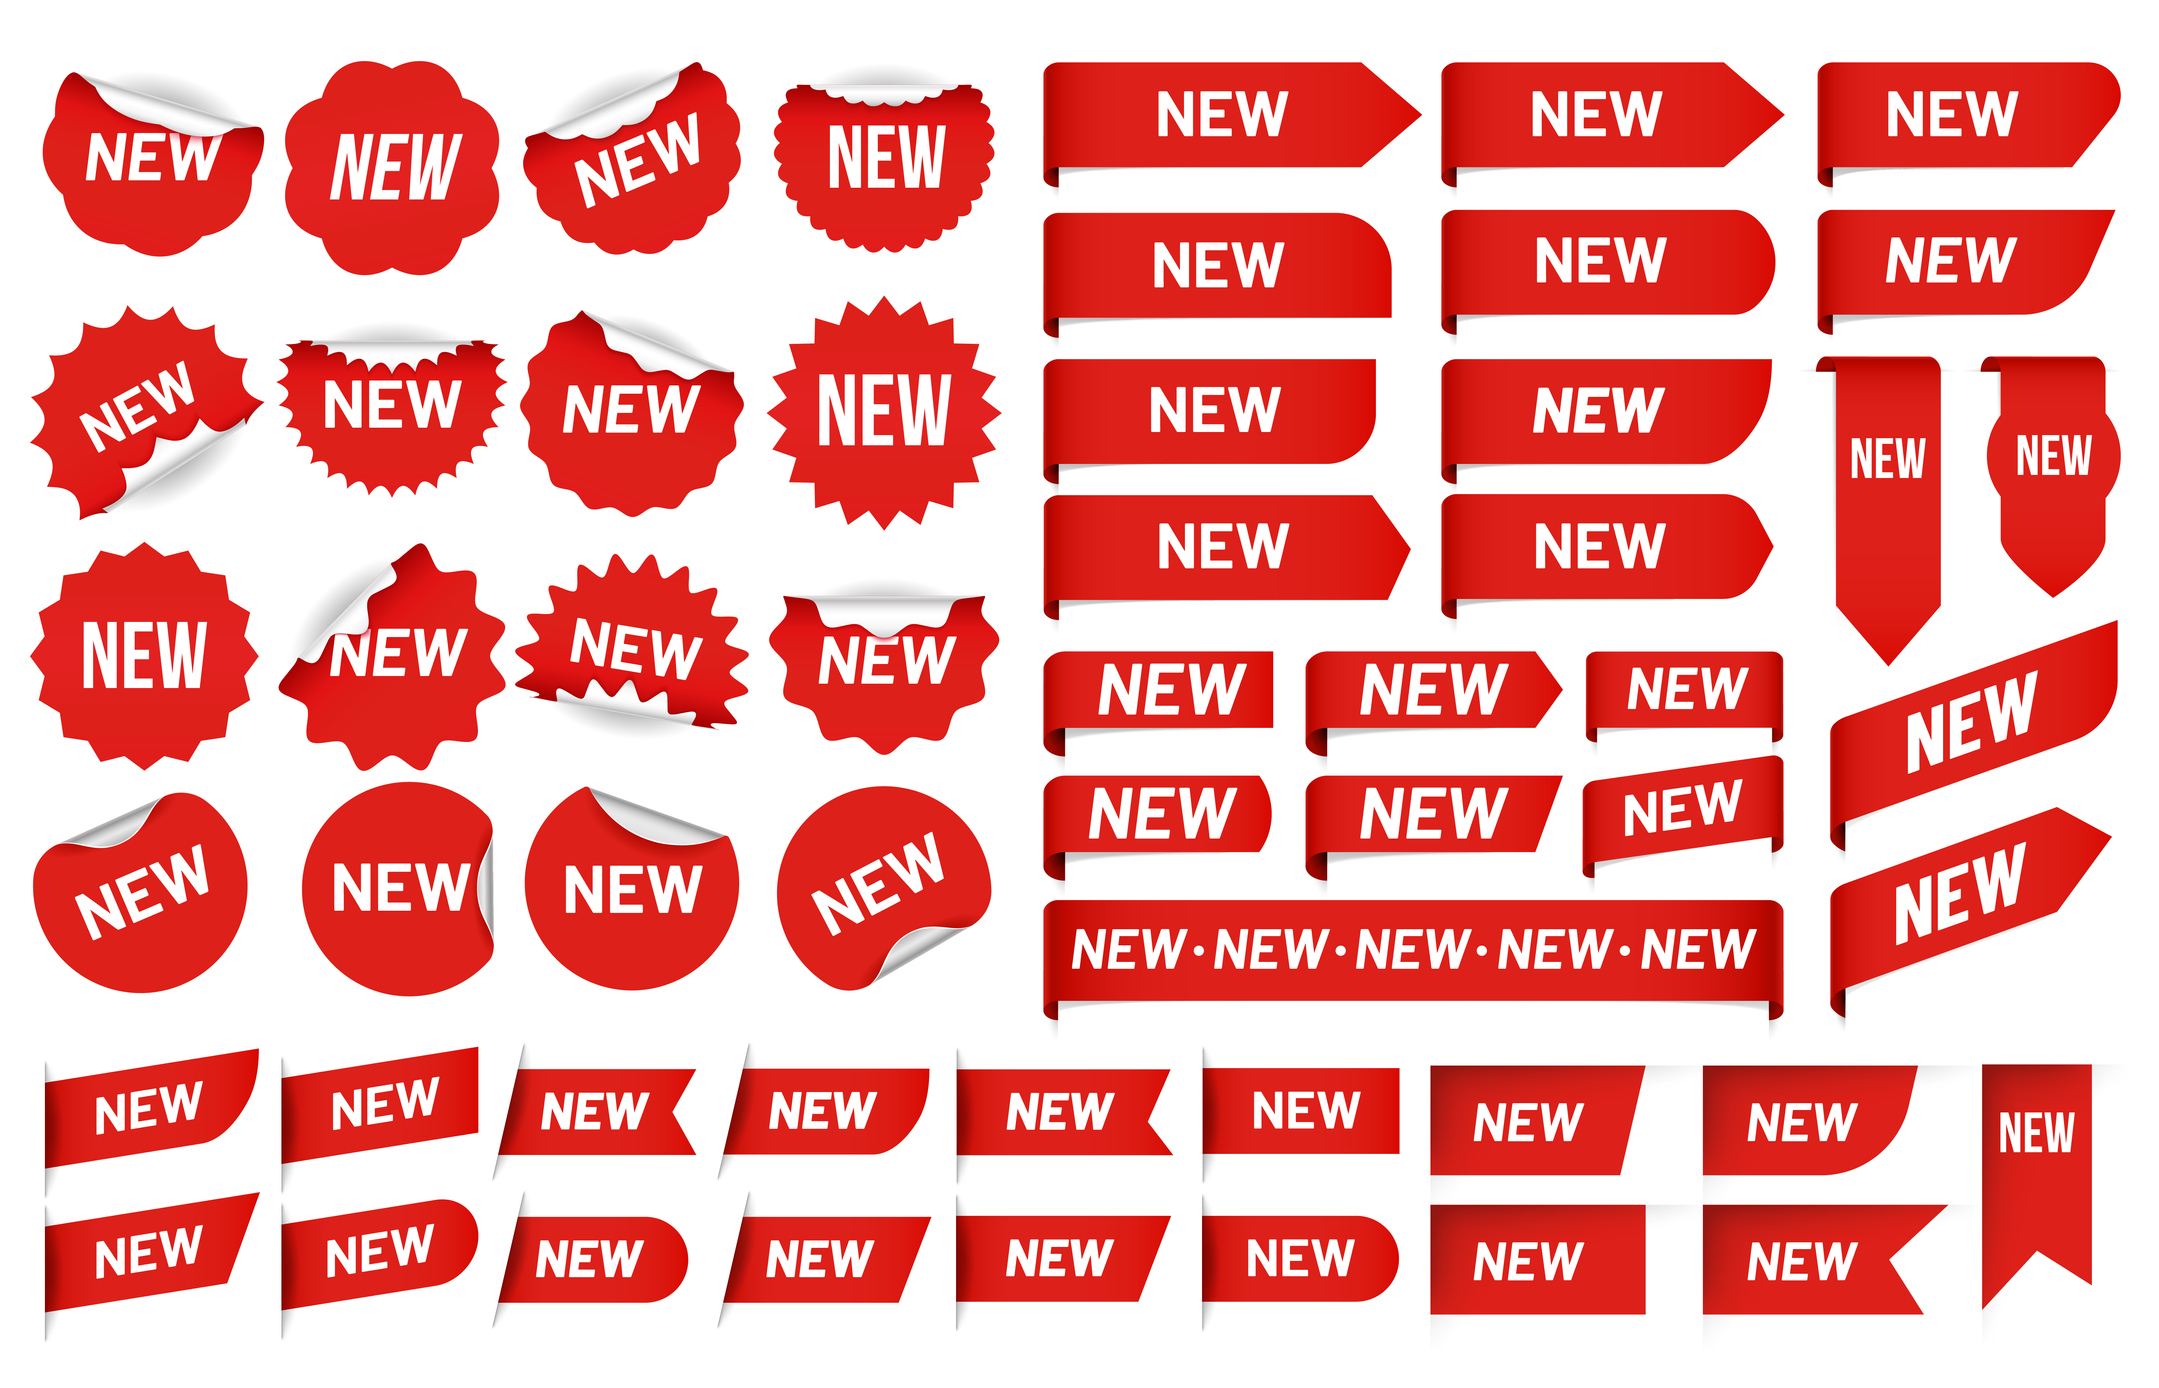 The word new on stickers, symbolizing a new website